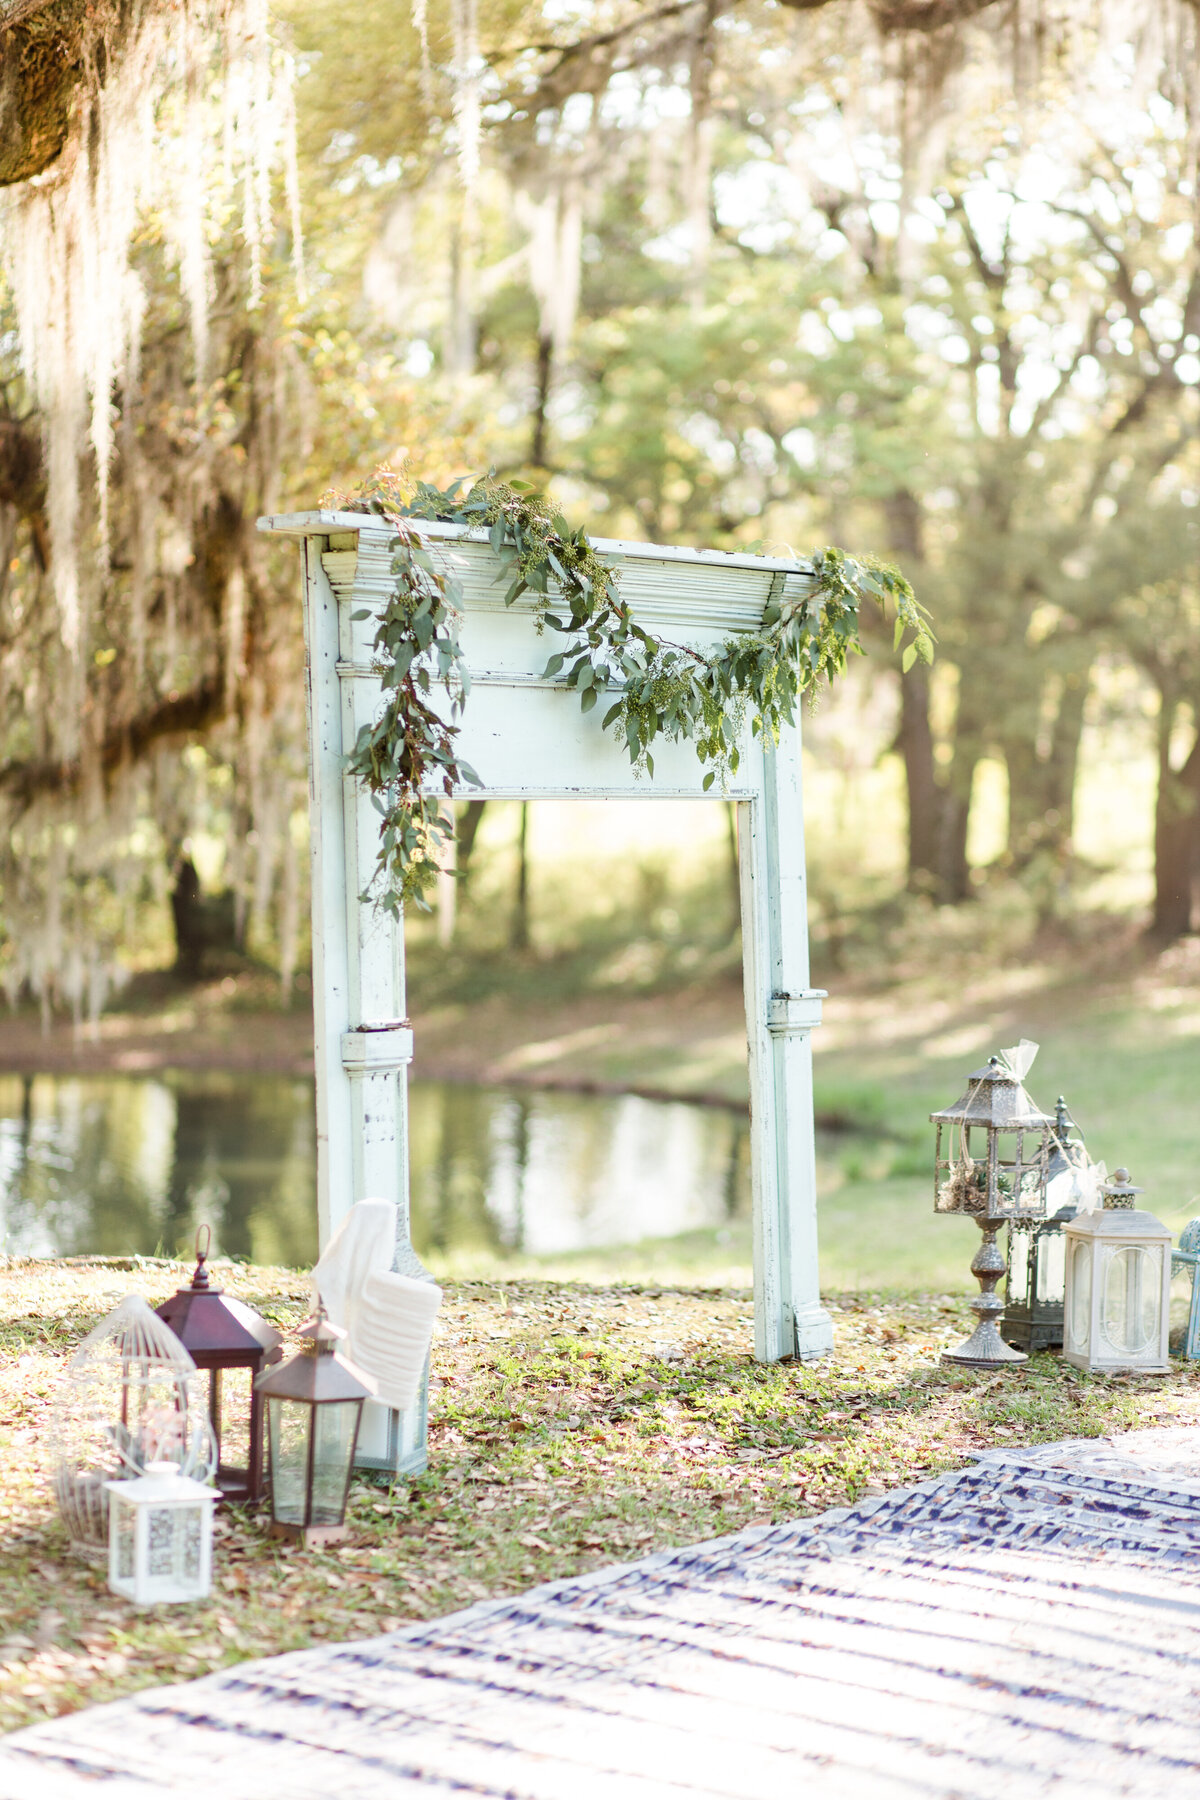 Renee Lorio Photography South Louisiana Wedding Engagement Light Airy Portrait Photographer Photos Southern Clean Colorful10